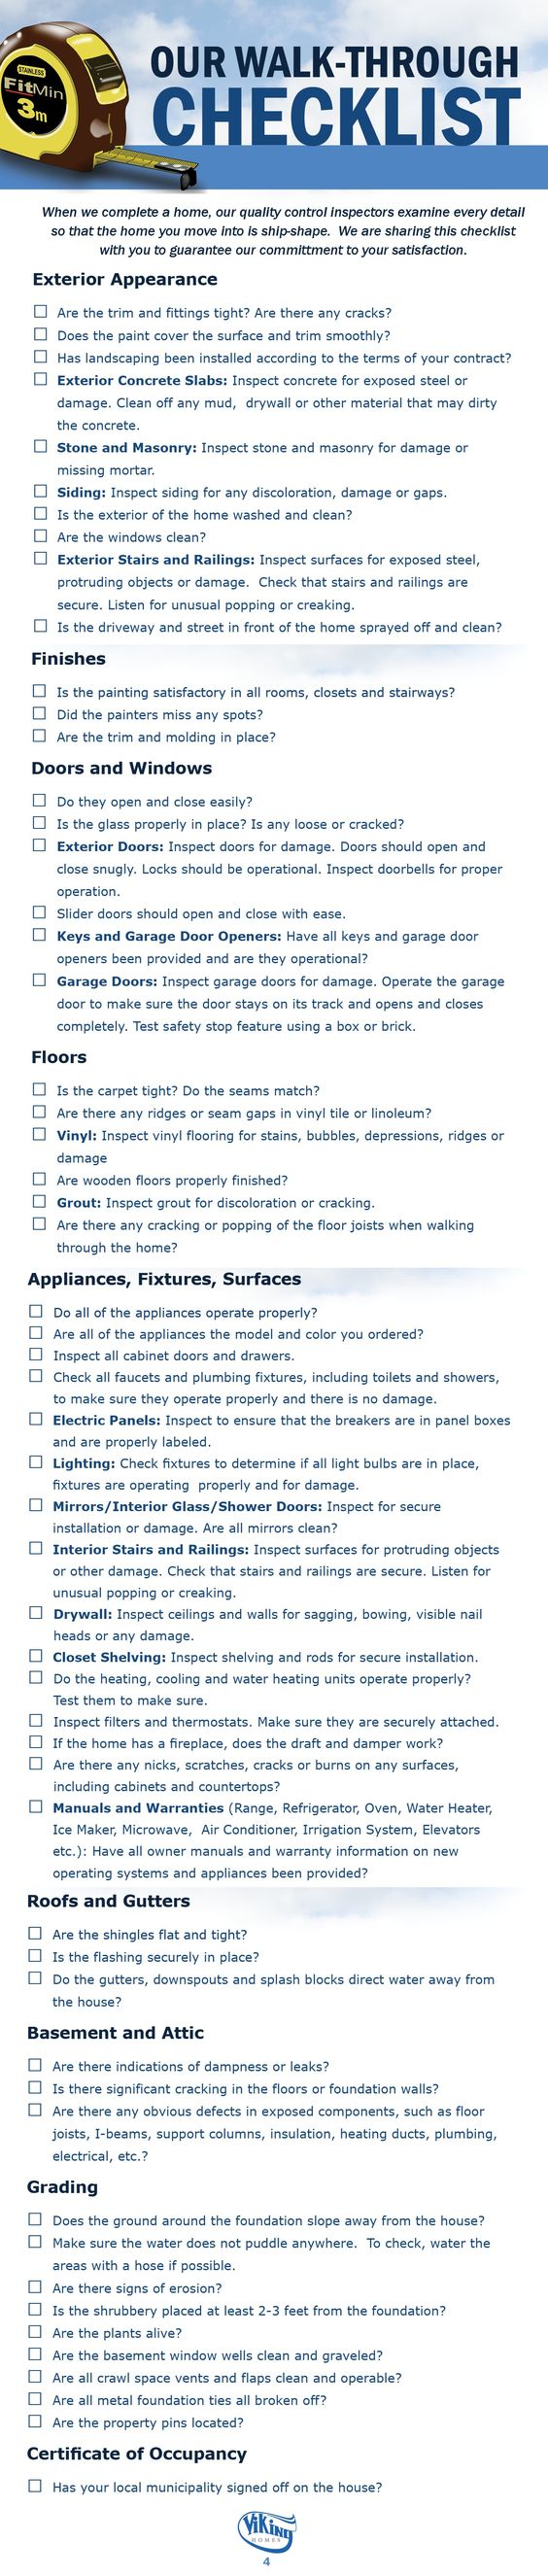 Vikings Home And New Home Checklist On Pinterest